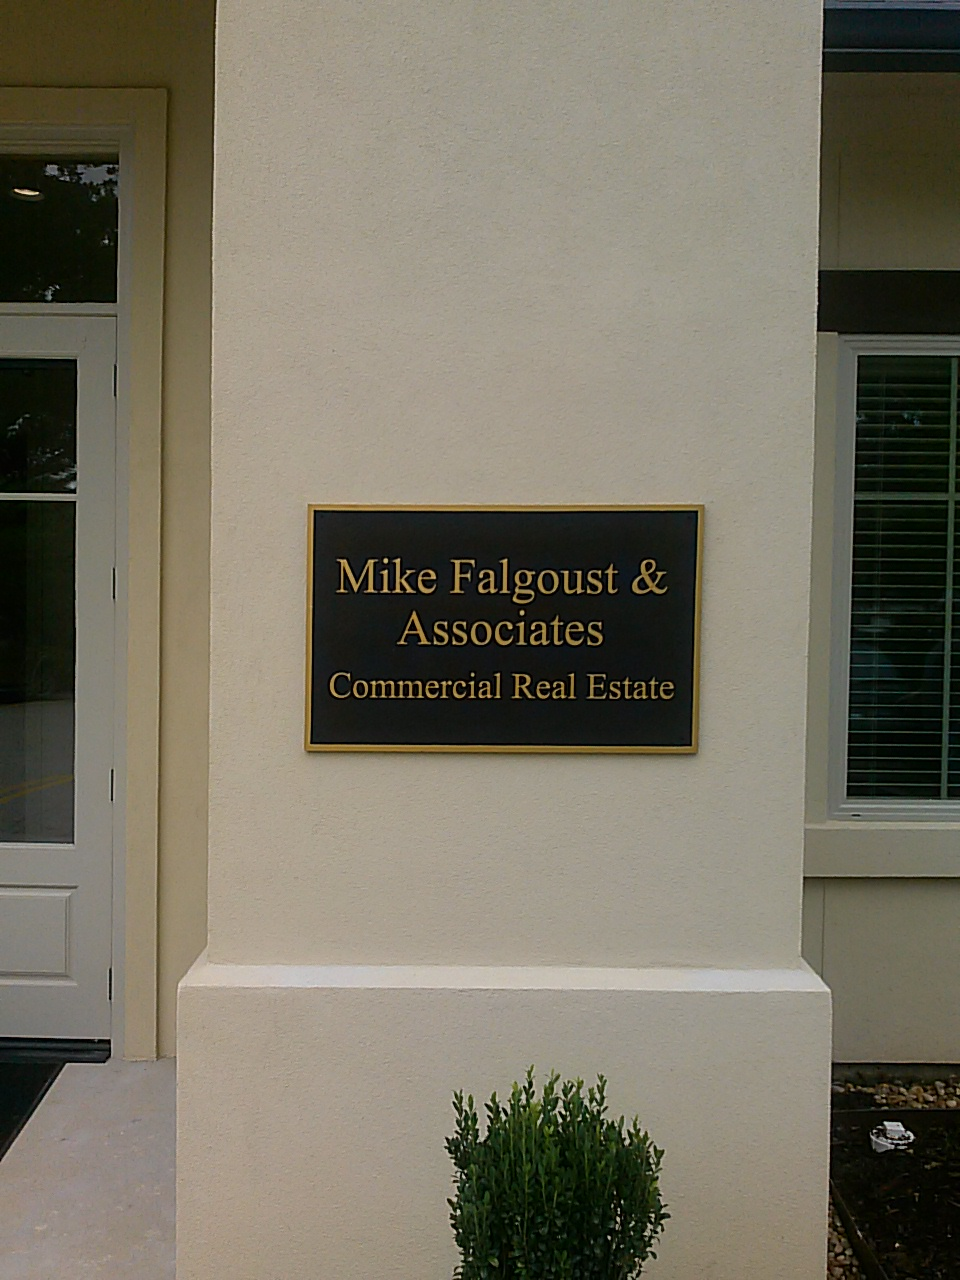 Mike Falgoust & Associates Bronze Plaque - Greater Baton Rouge Signs